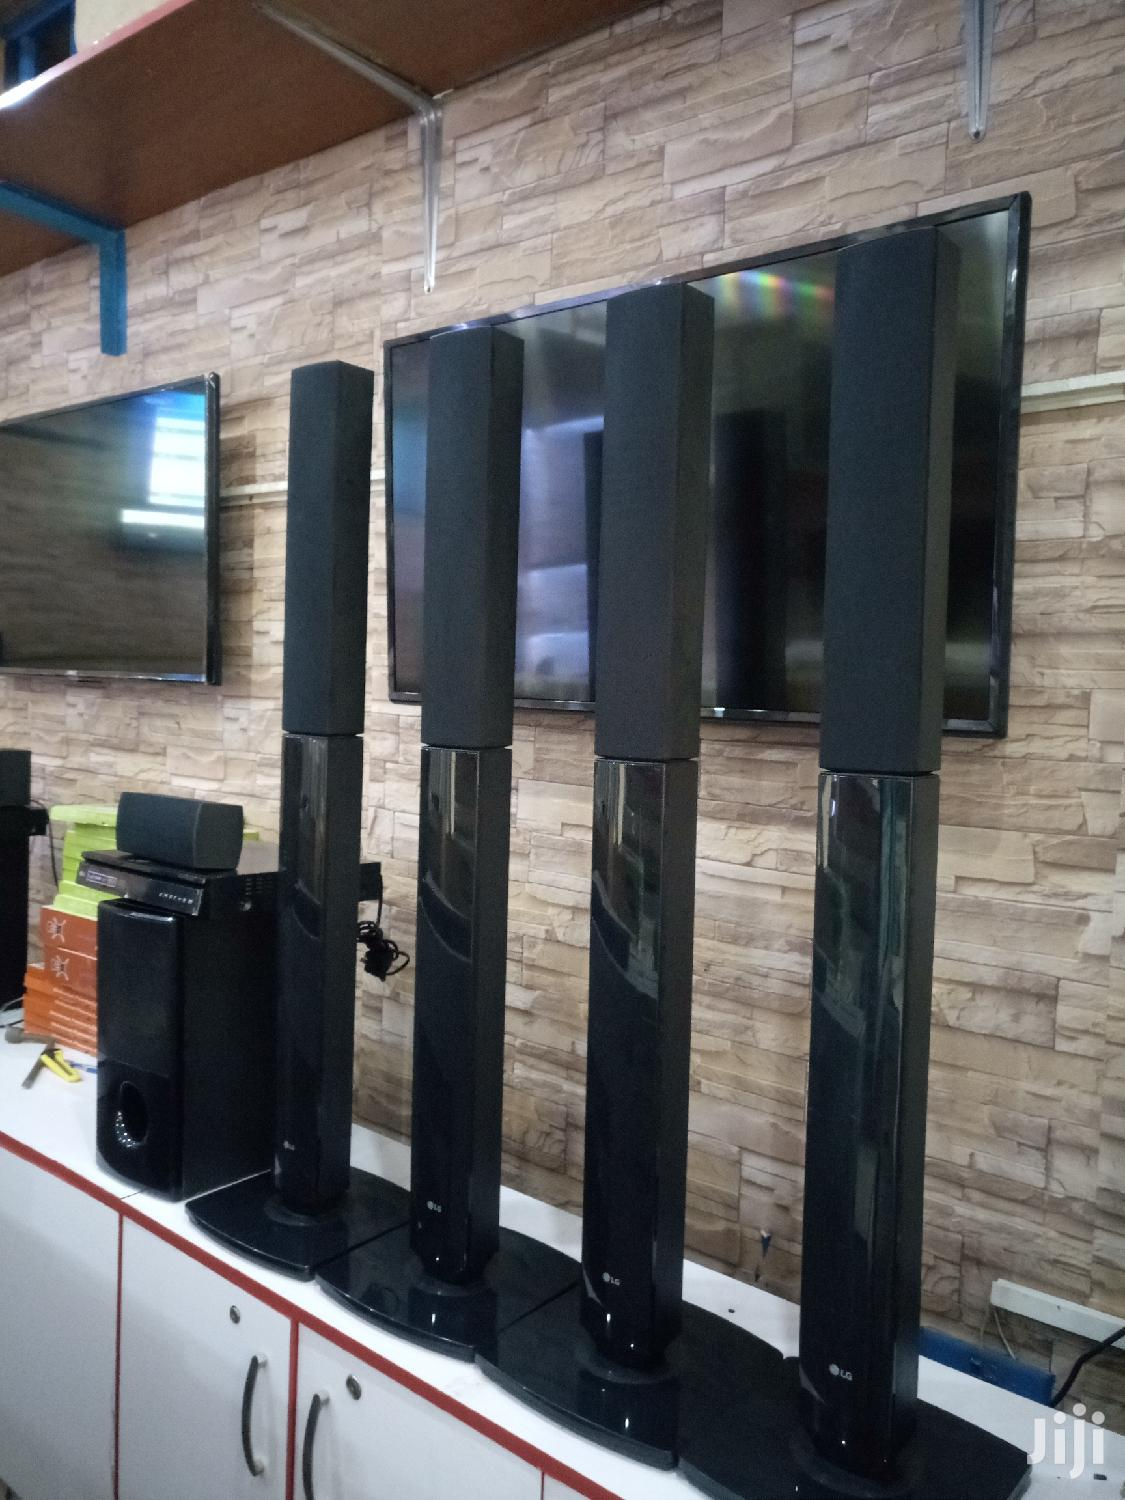 Archive: LG 1500 Watts Home Theater System